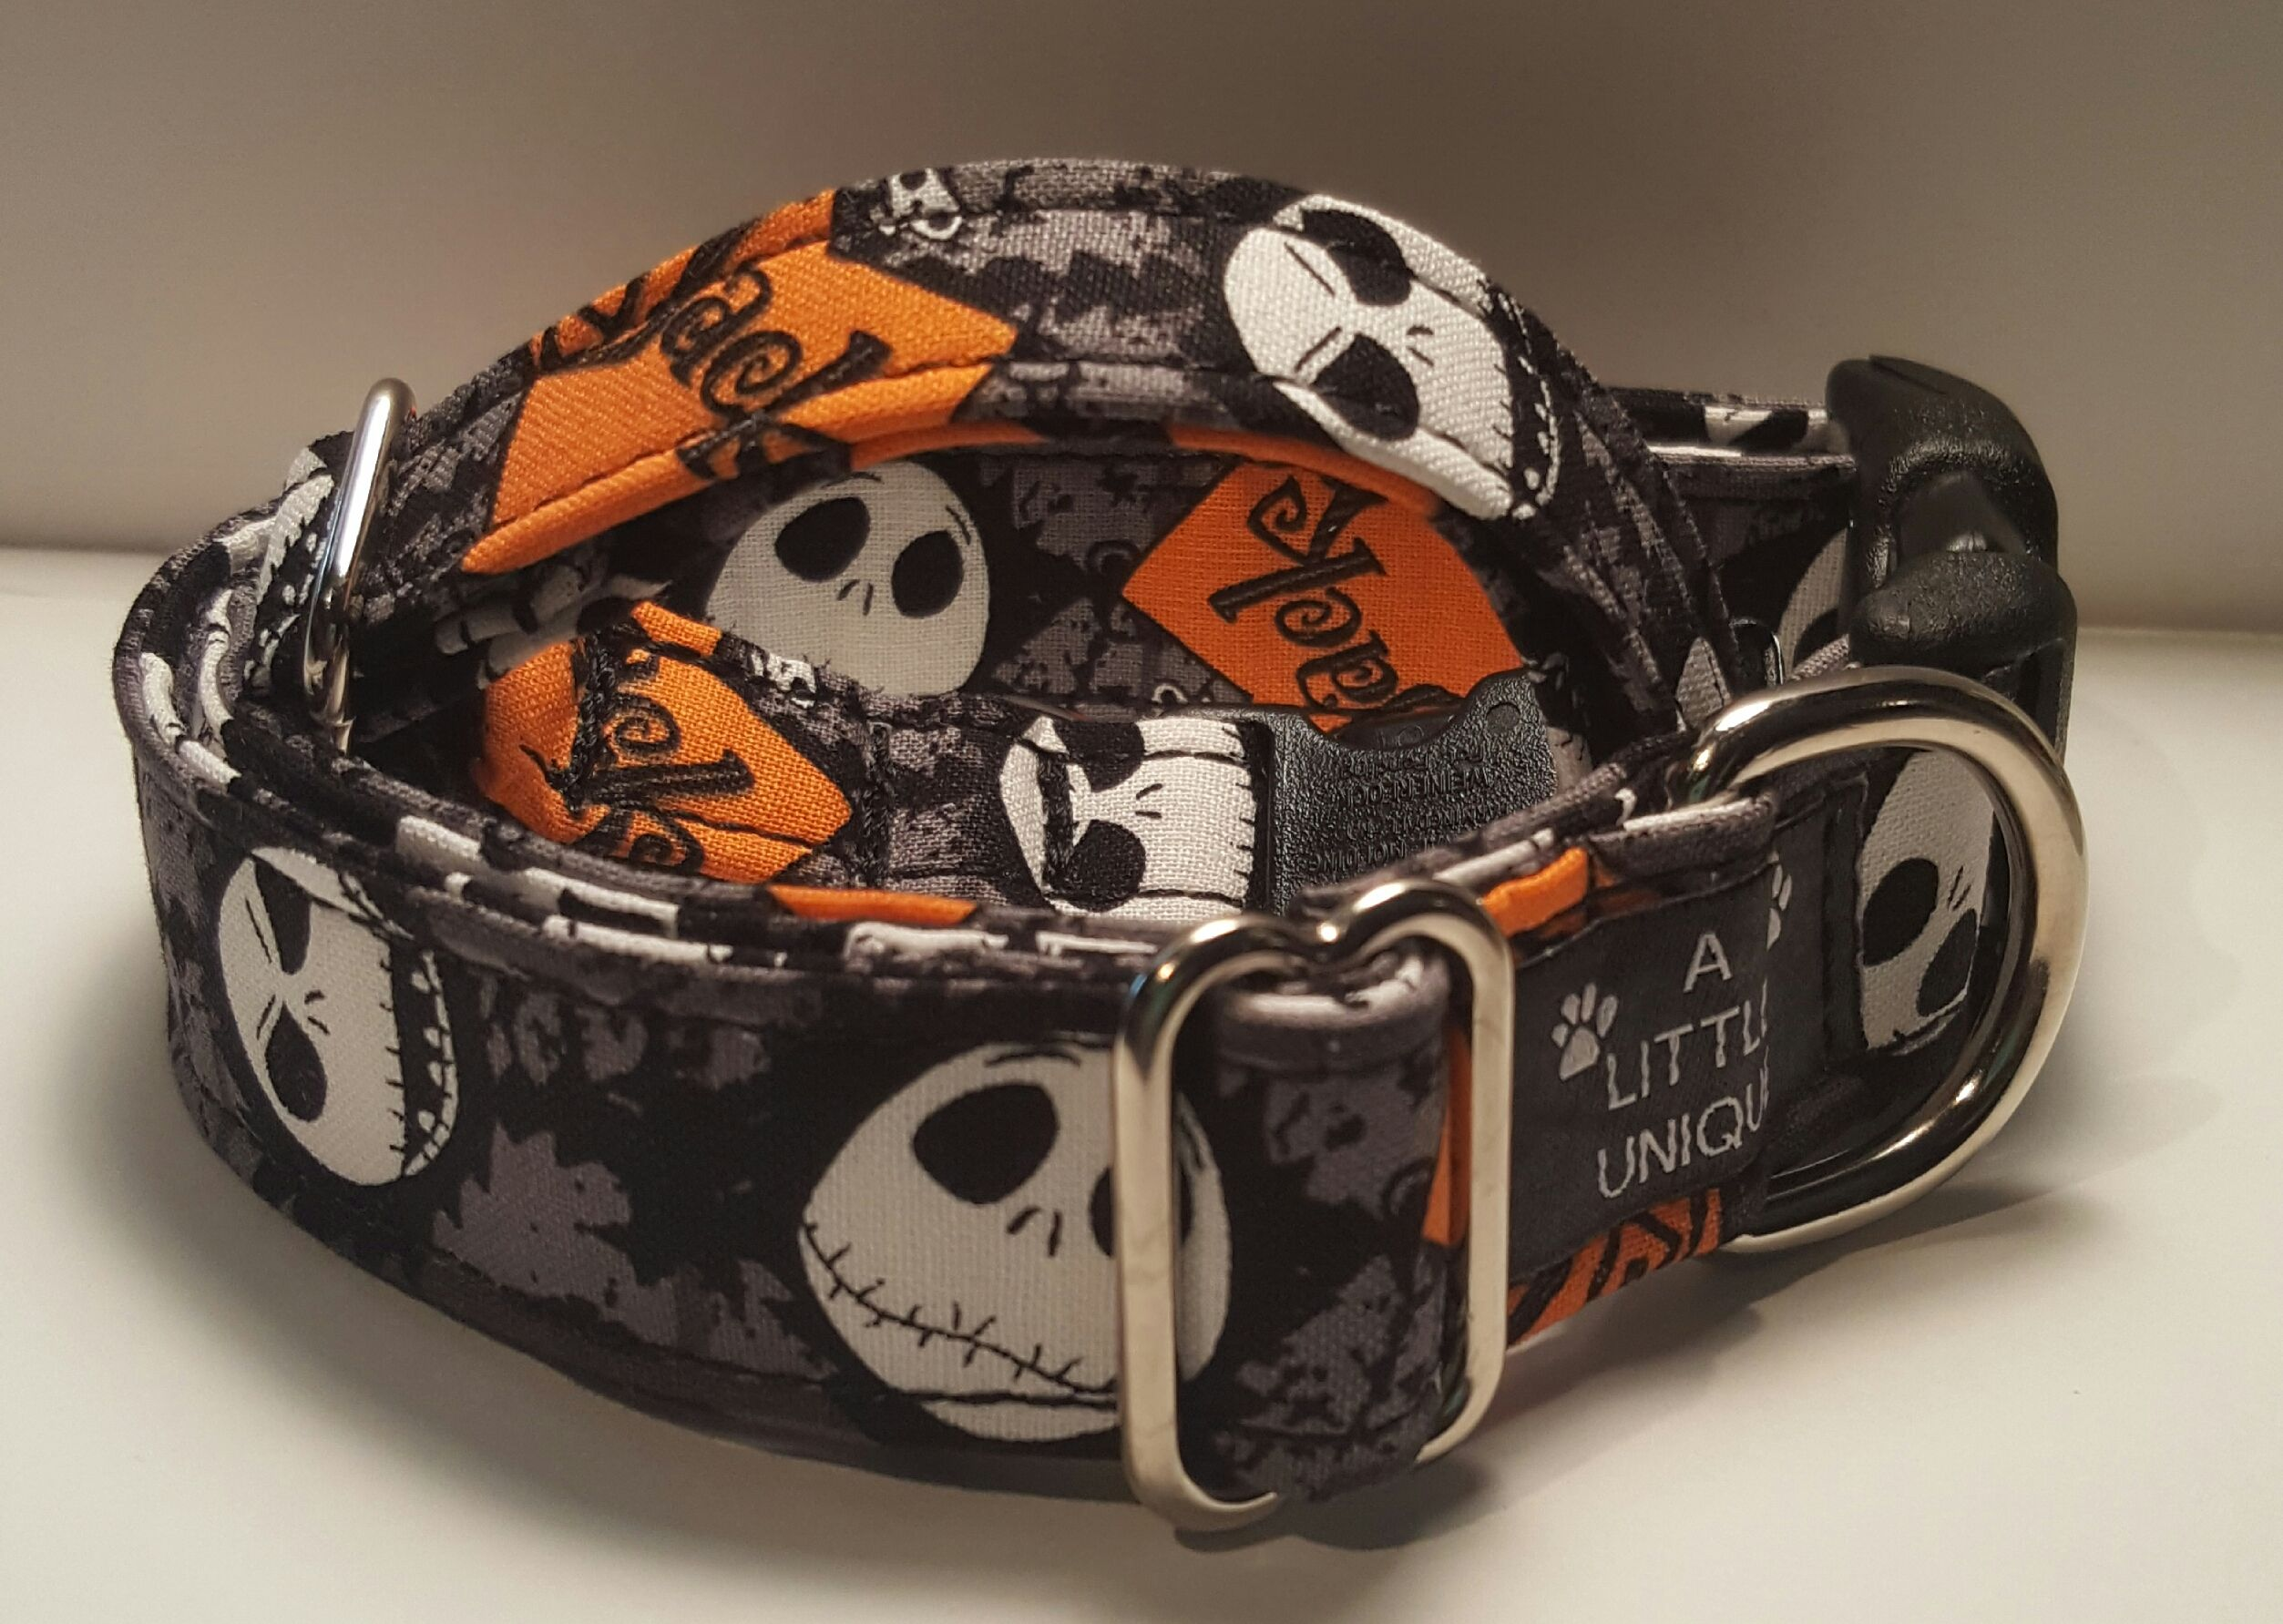 Jack Skellington himself would be proud to purchase one of